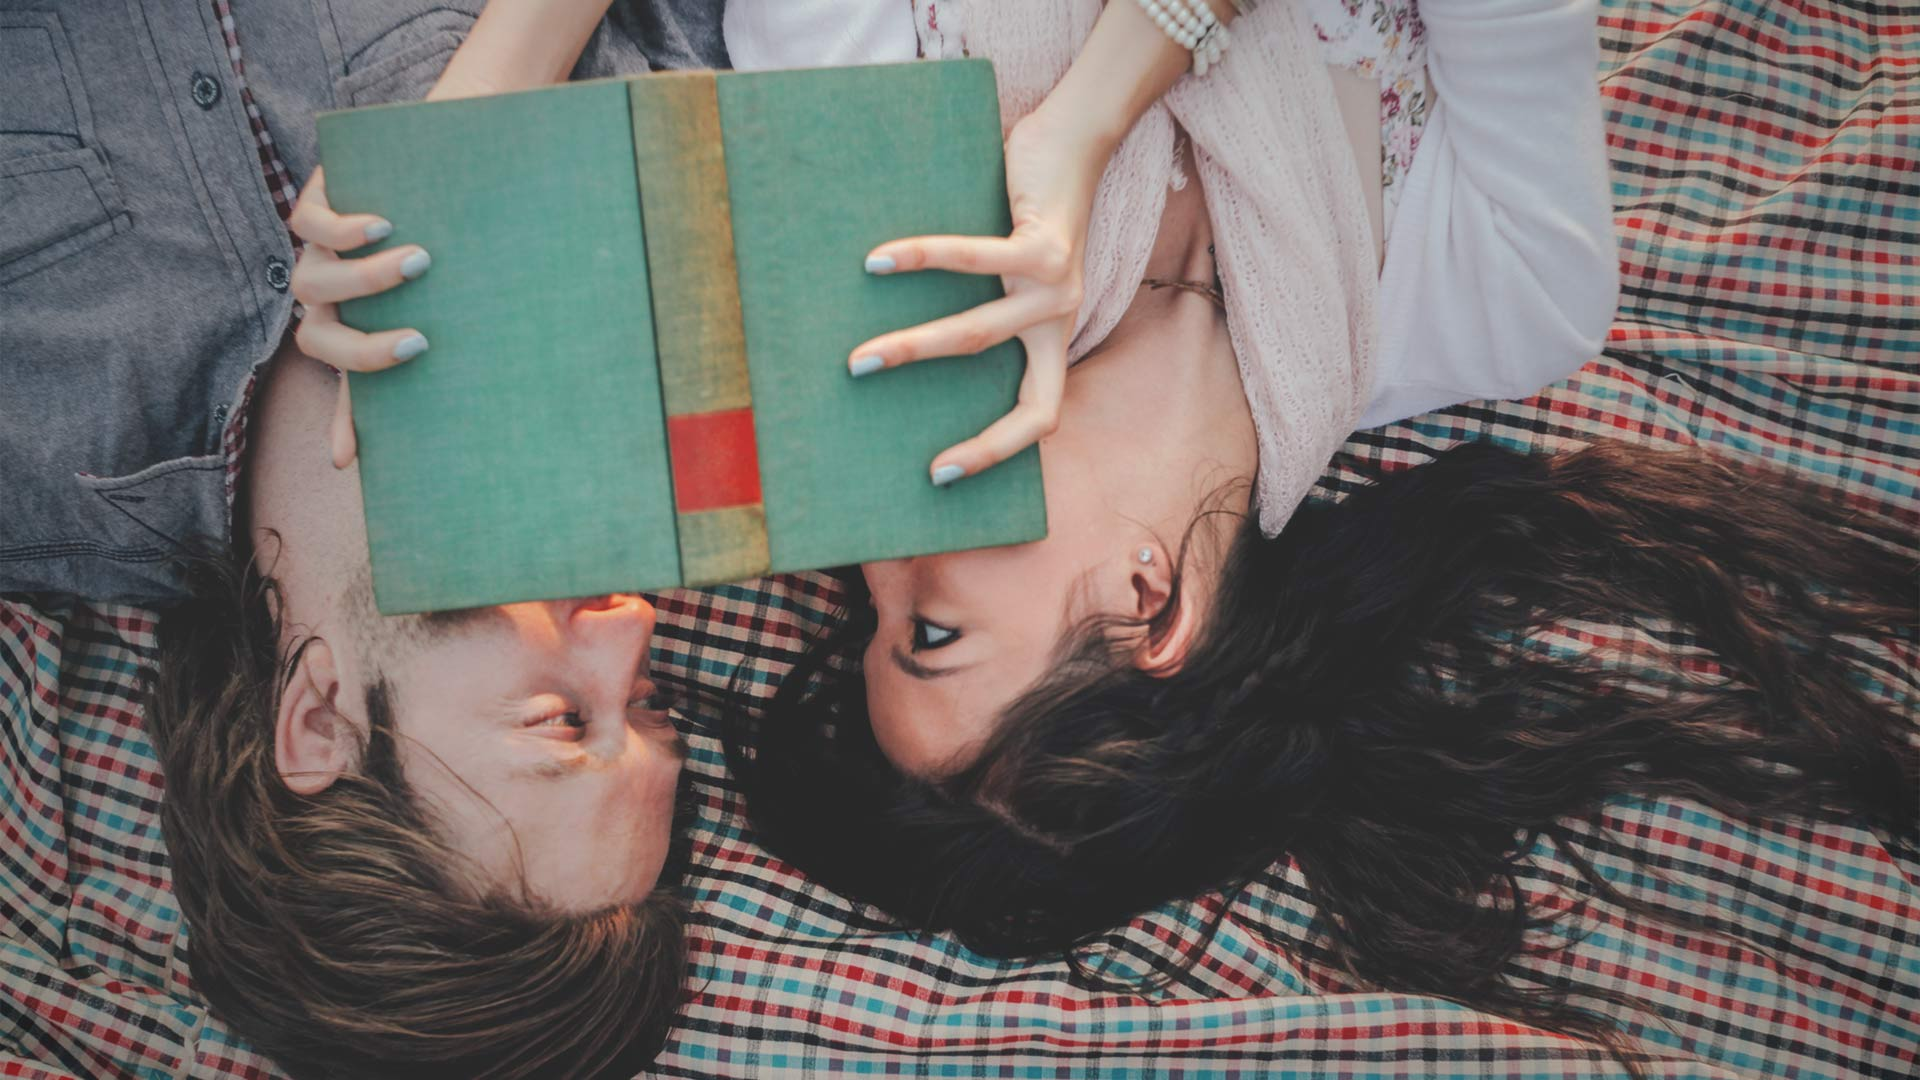 Couple Reading Together | Dating While Introverted: What You Need To Know